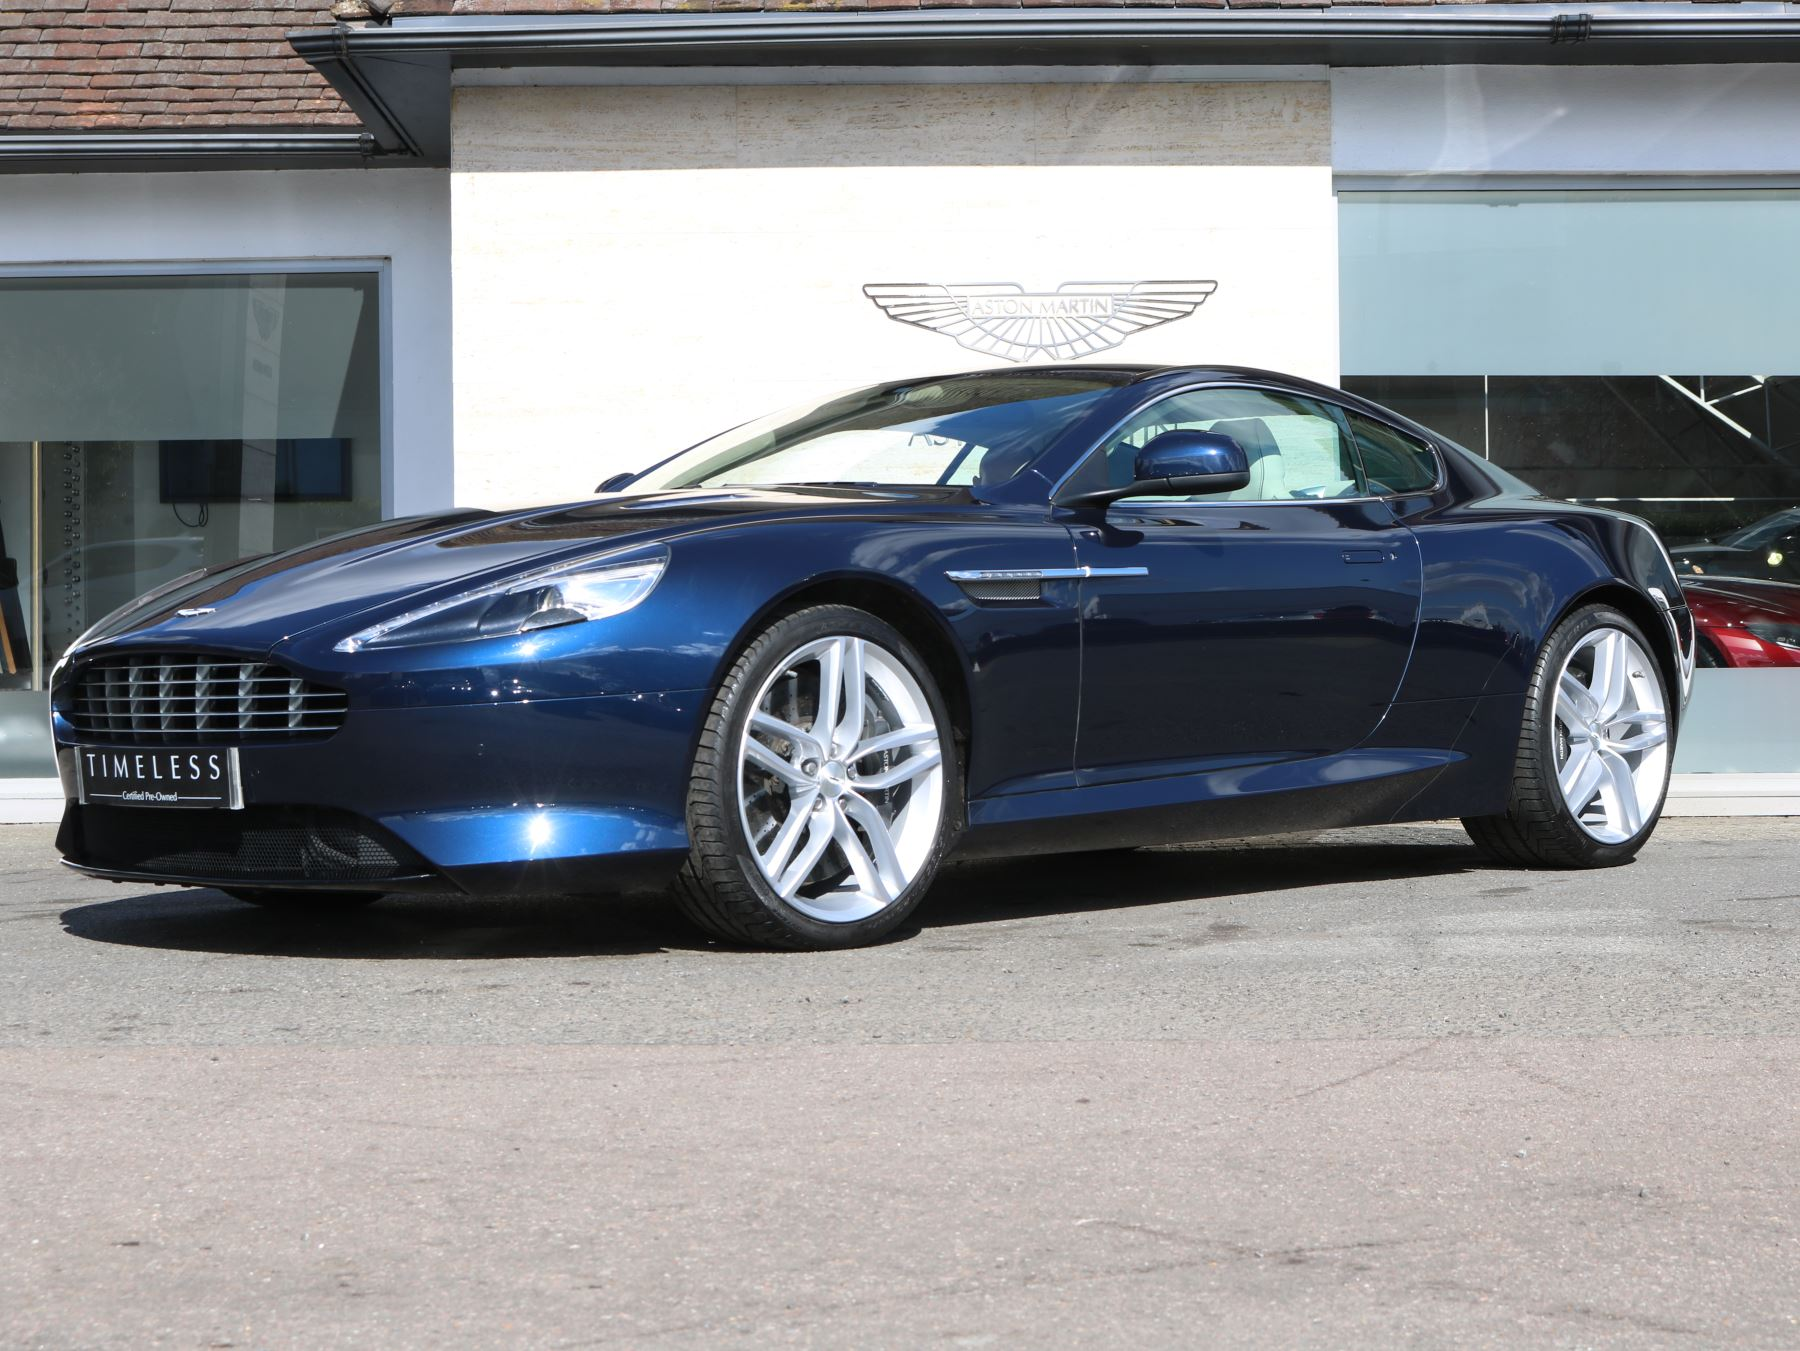 Aston Martin DB V GT Dr Touchtronic Automatic Coupe - Aston martin db9 pre owned